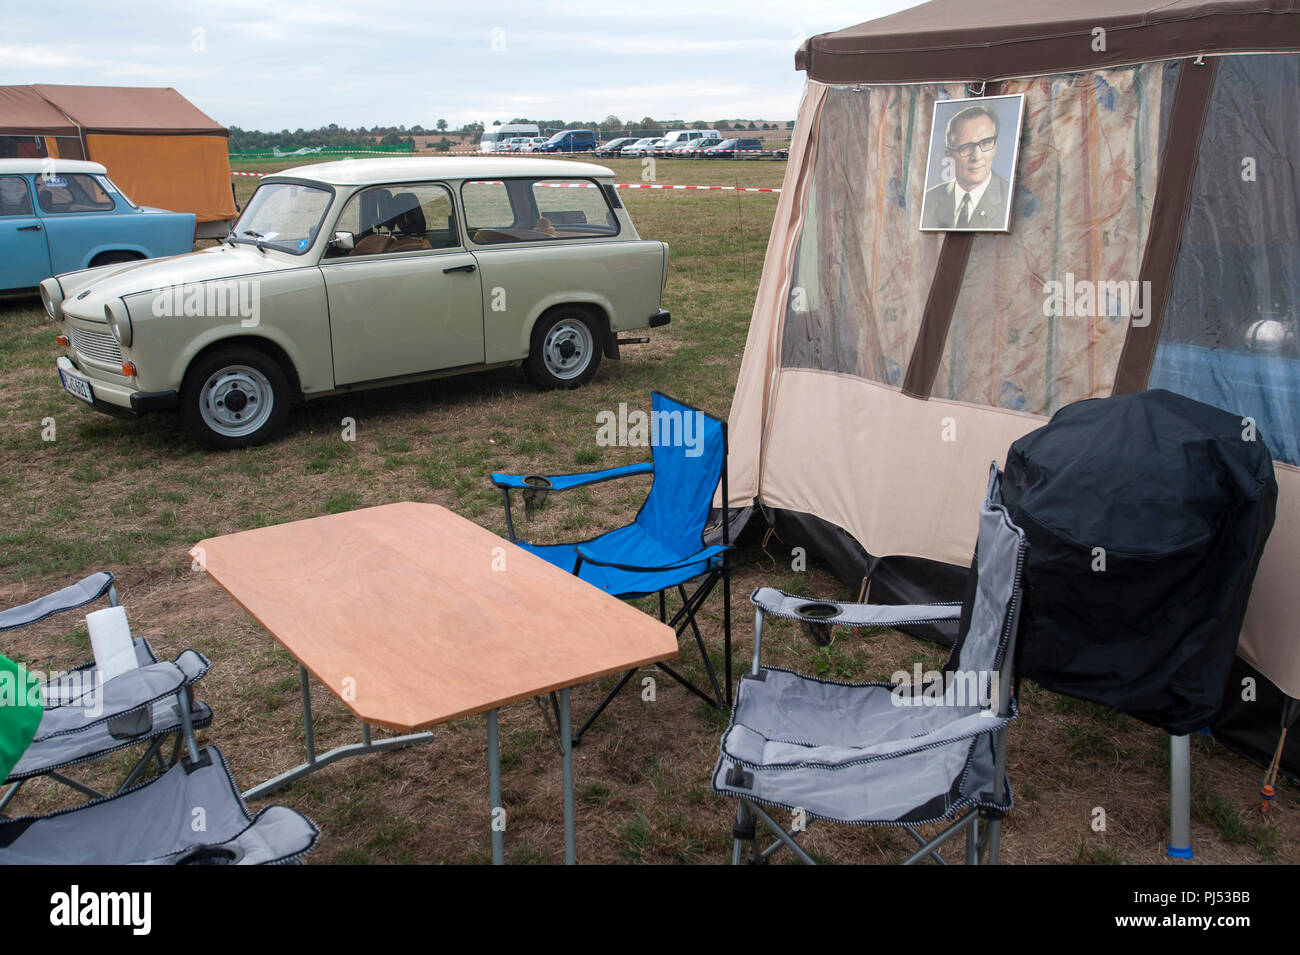 East German nostalgia for the DDR at a Trabant Rally in Zwickau, Saxony, Germany. - Stock Image